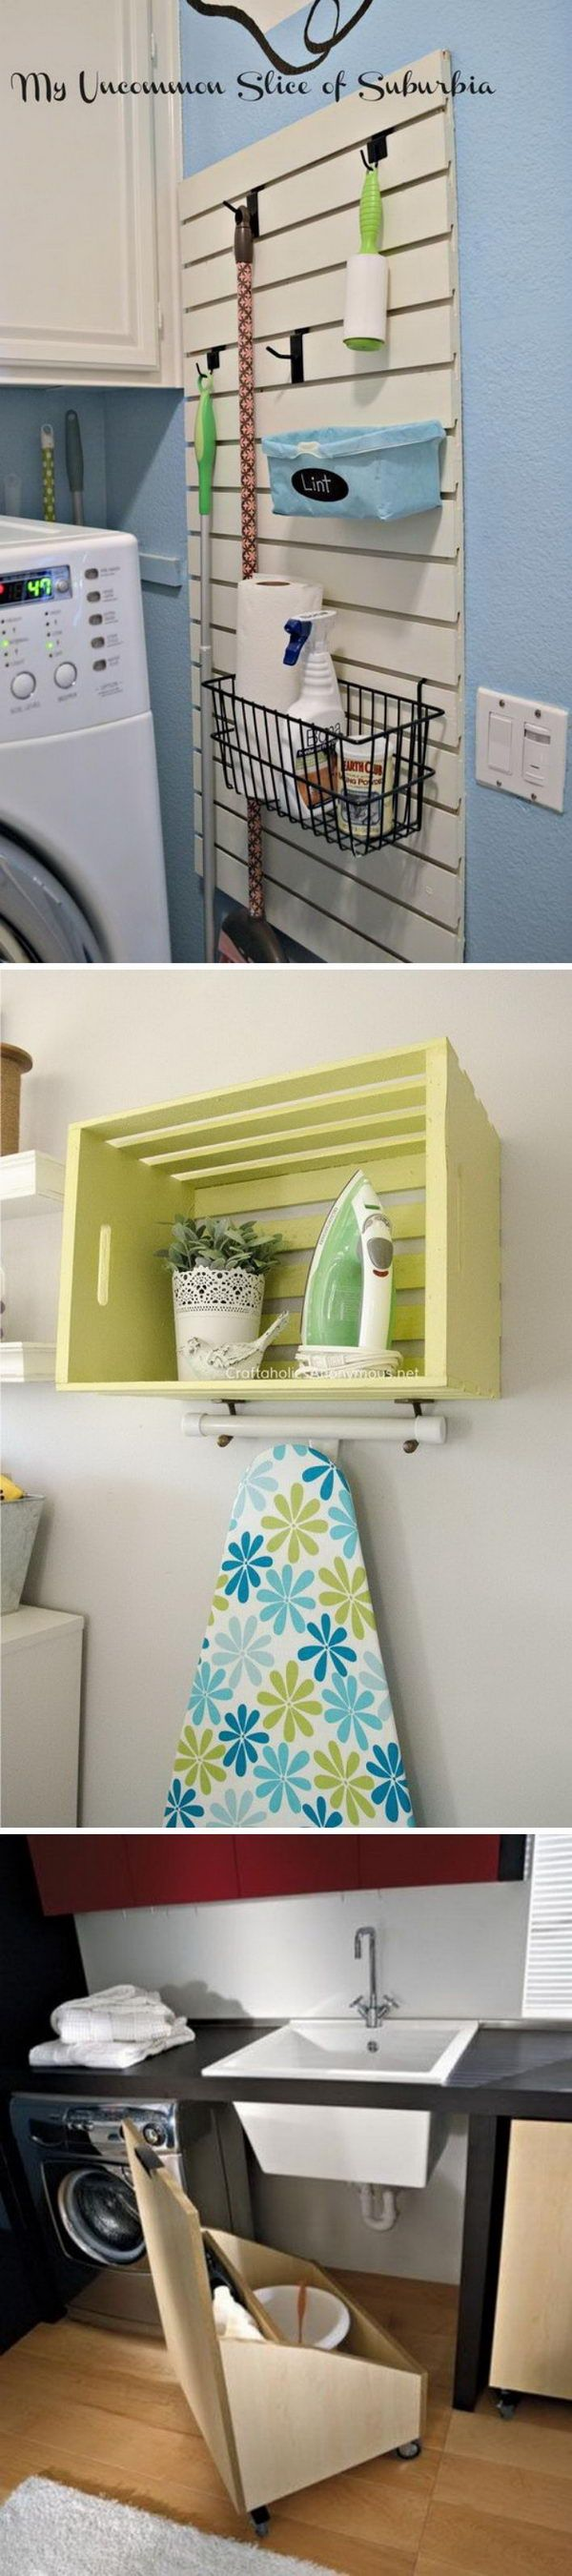 best 20+ laundry room organization ideas on pinterest | laundry